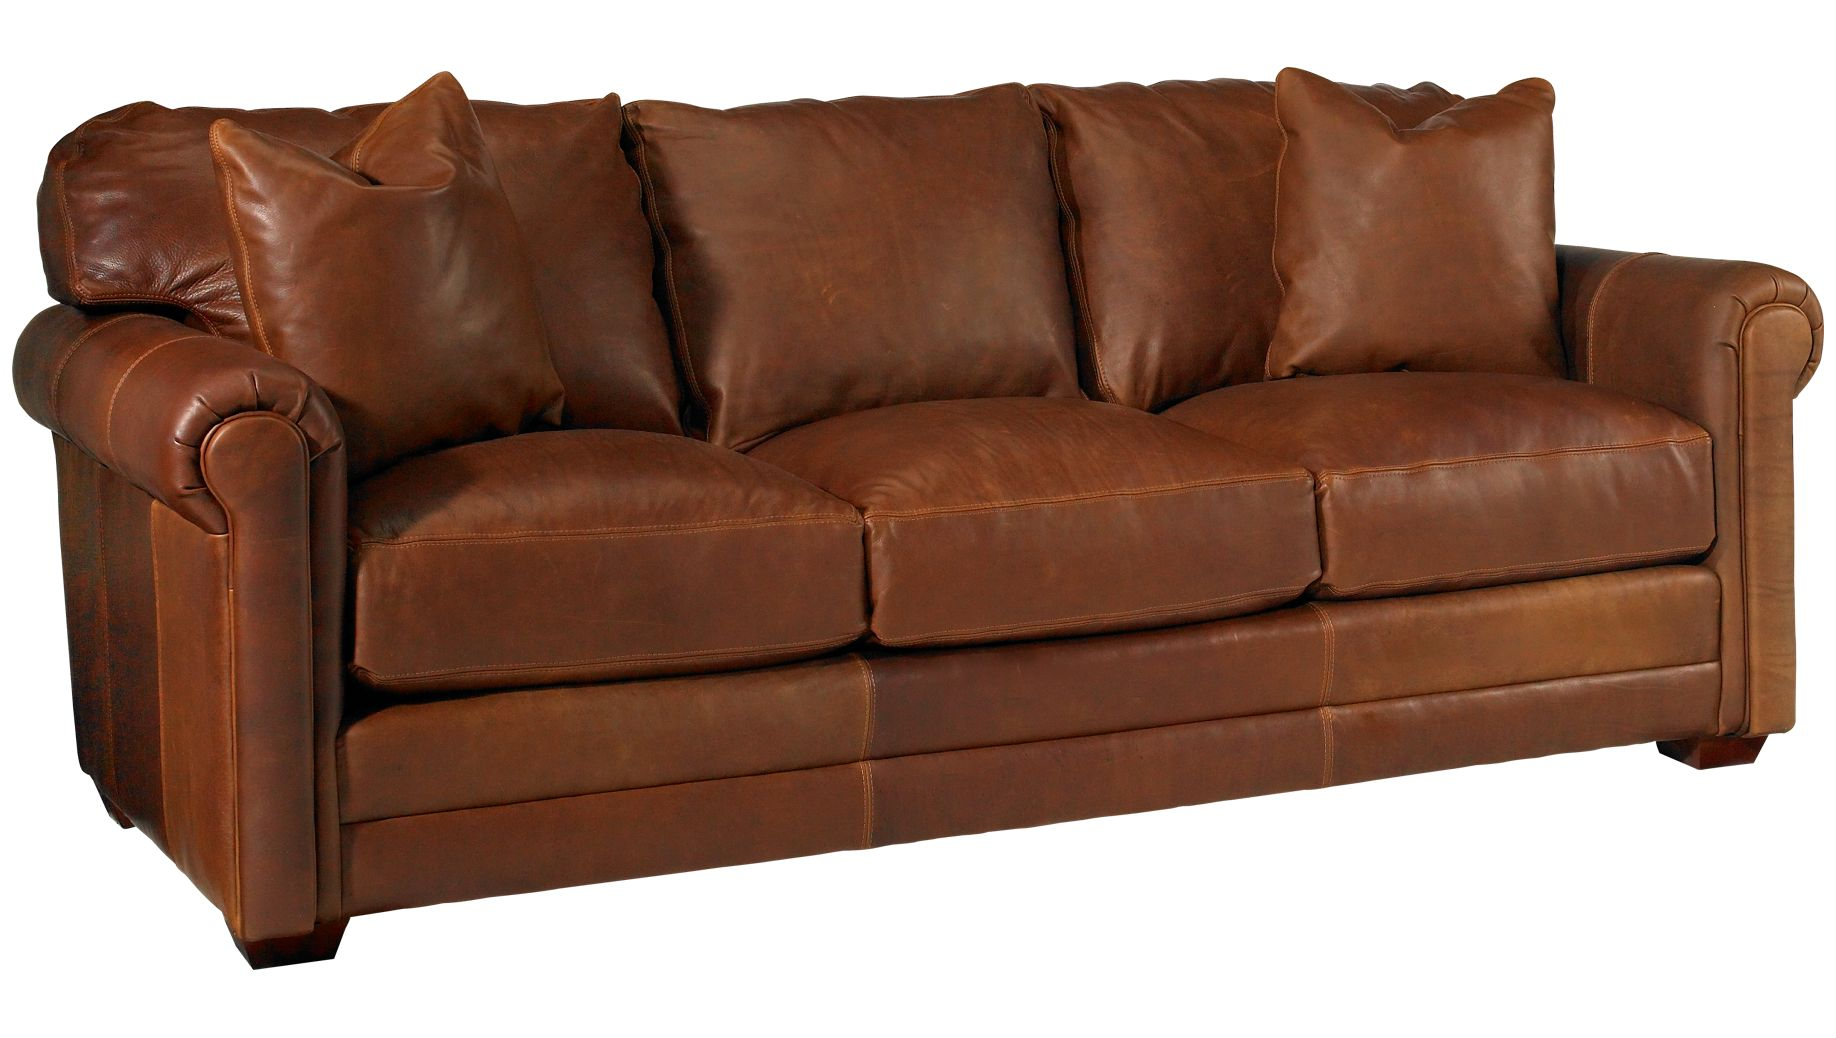 Klaussner Leather Sofa Rs Gold Sofa